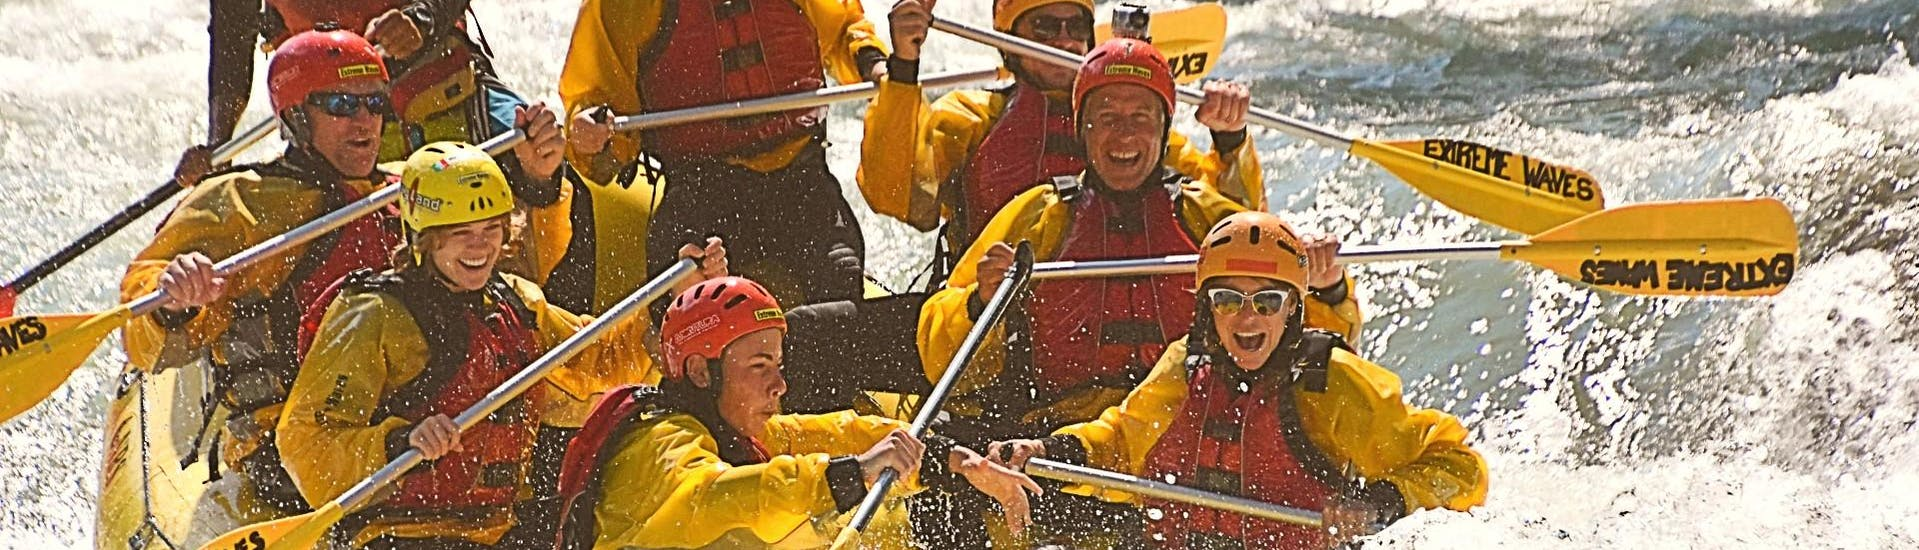 rafting-on-the-noce-exciting-extreme-waves